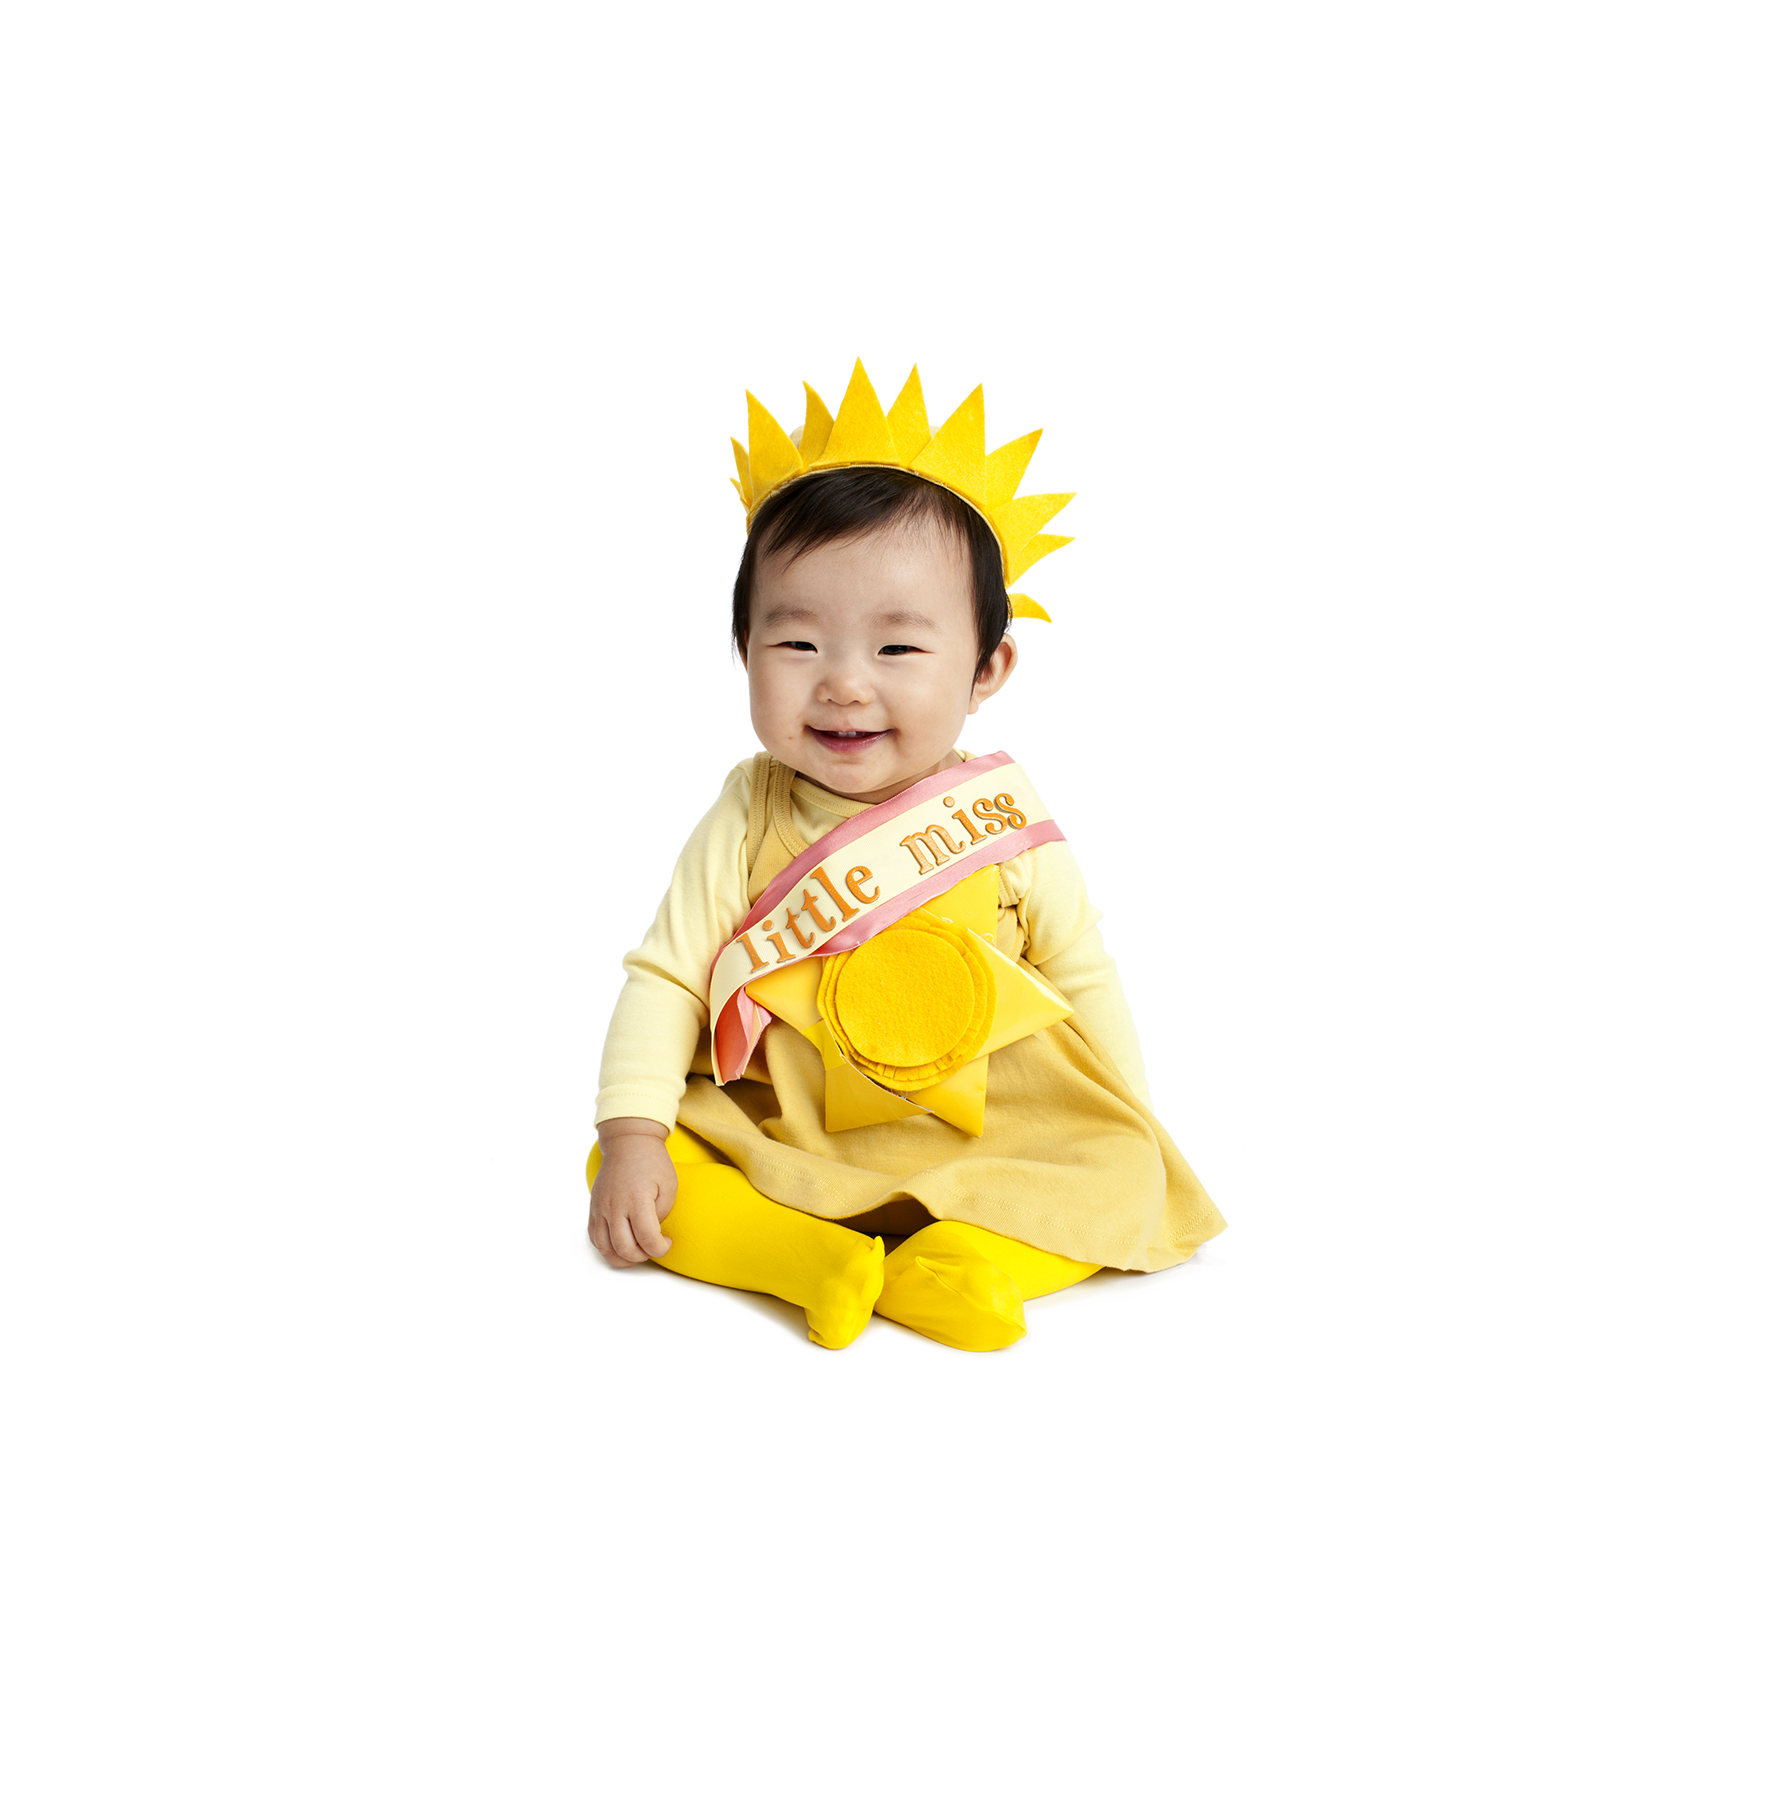 Little miss sunshine costume